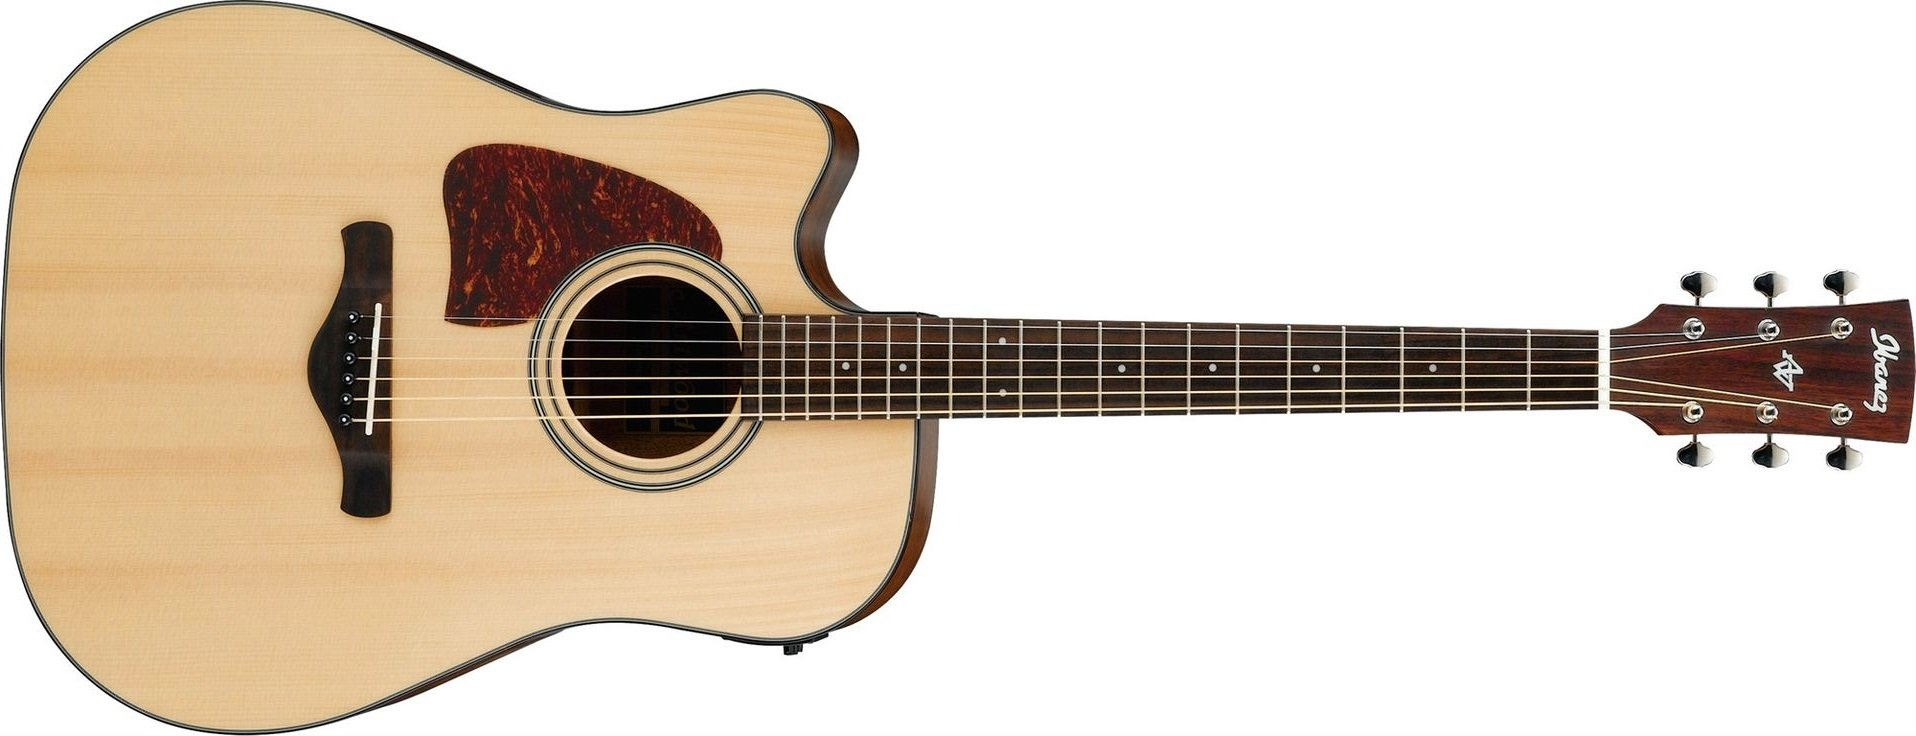 Ibanez AW400CE Artwood Solid Top Cutaway Dreadnought Acoustic Electric Guitar, Natural